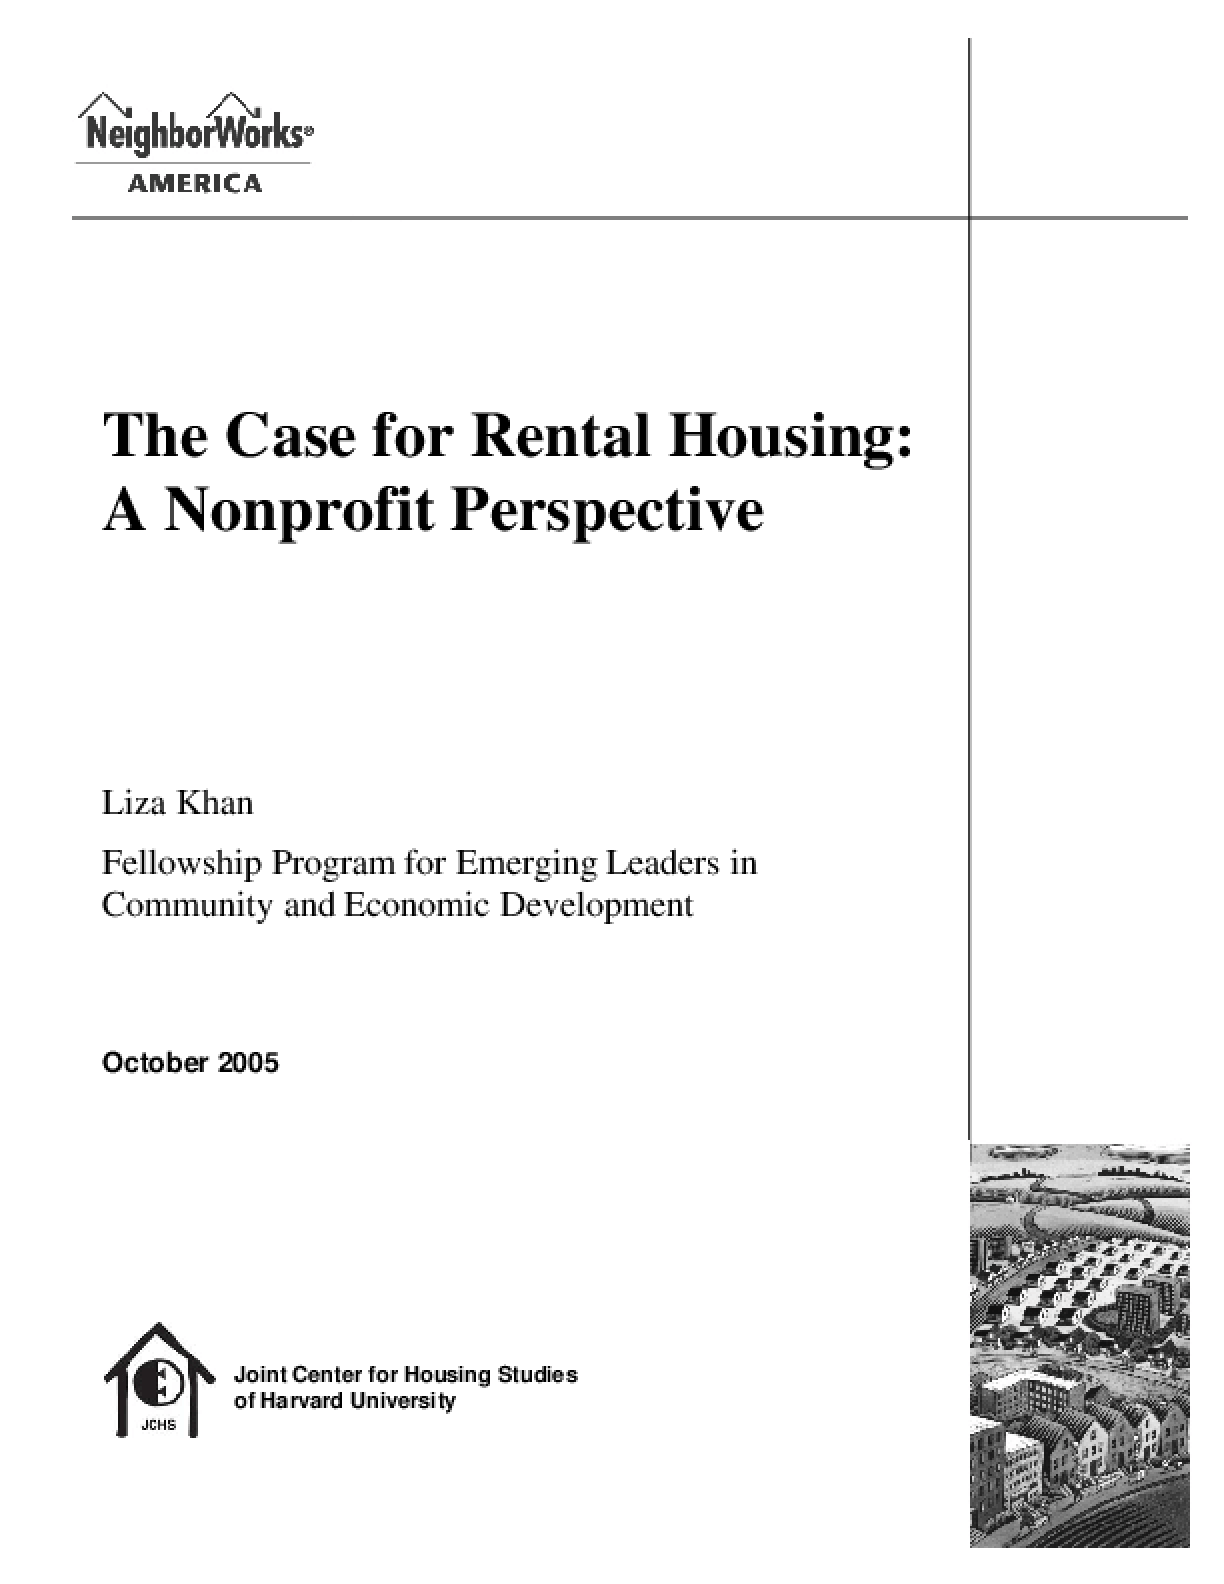 The Case for Rental Housing - A Nonprofit Perspective